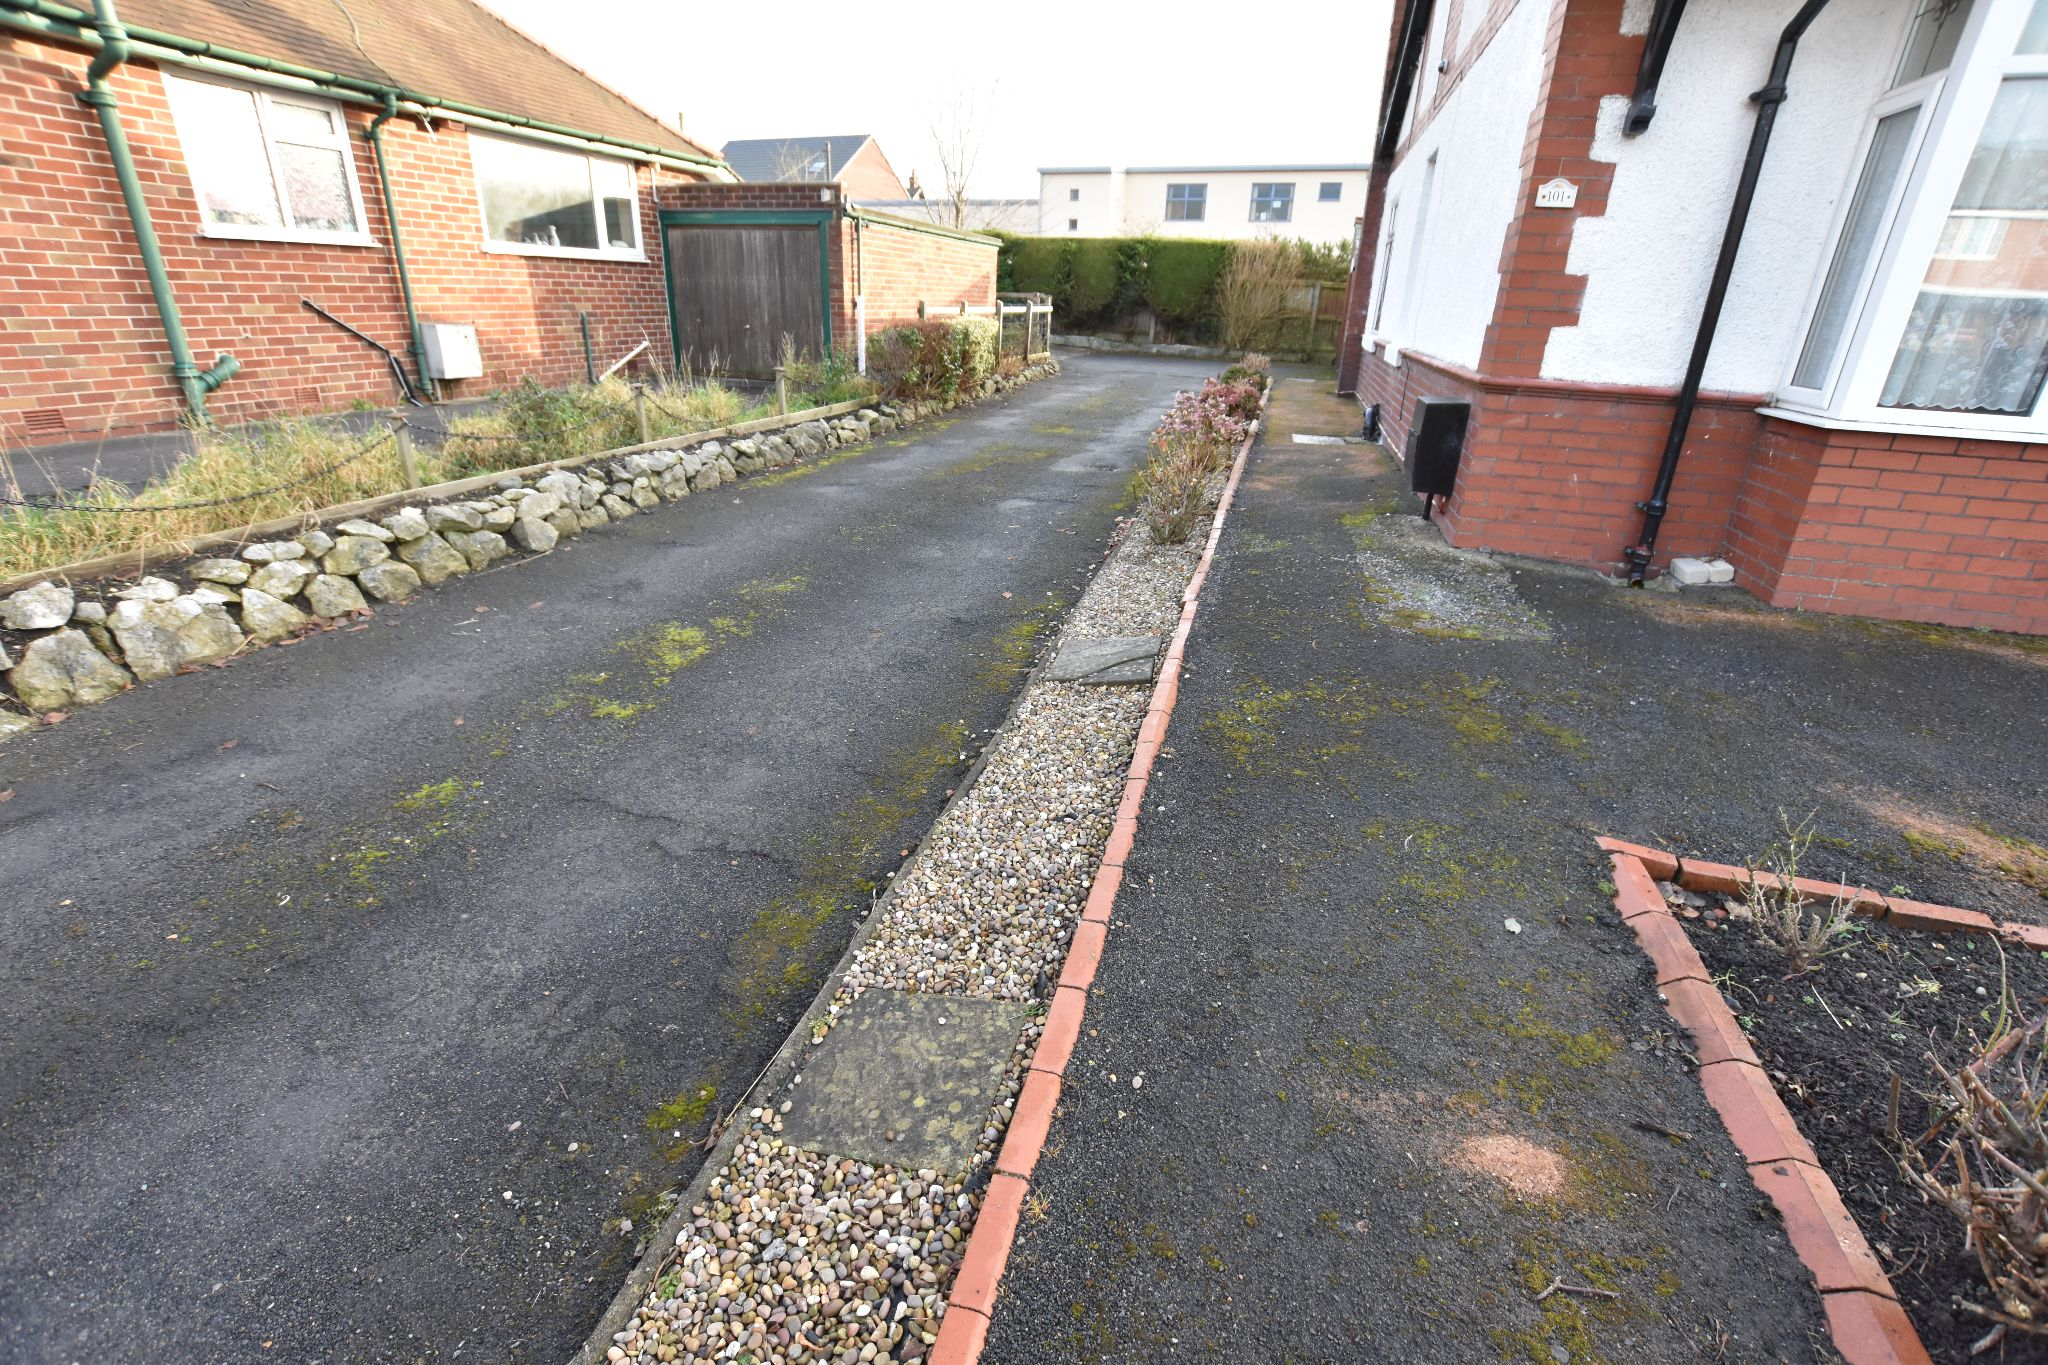 2 bedroom detached bungalow Sold STC in Preston - Driveway